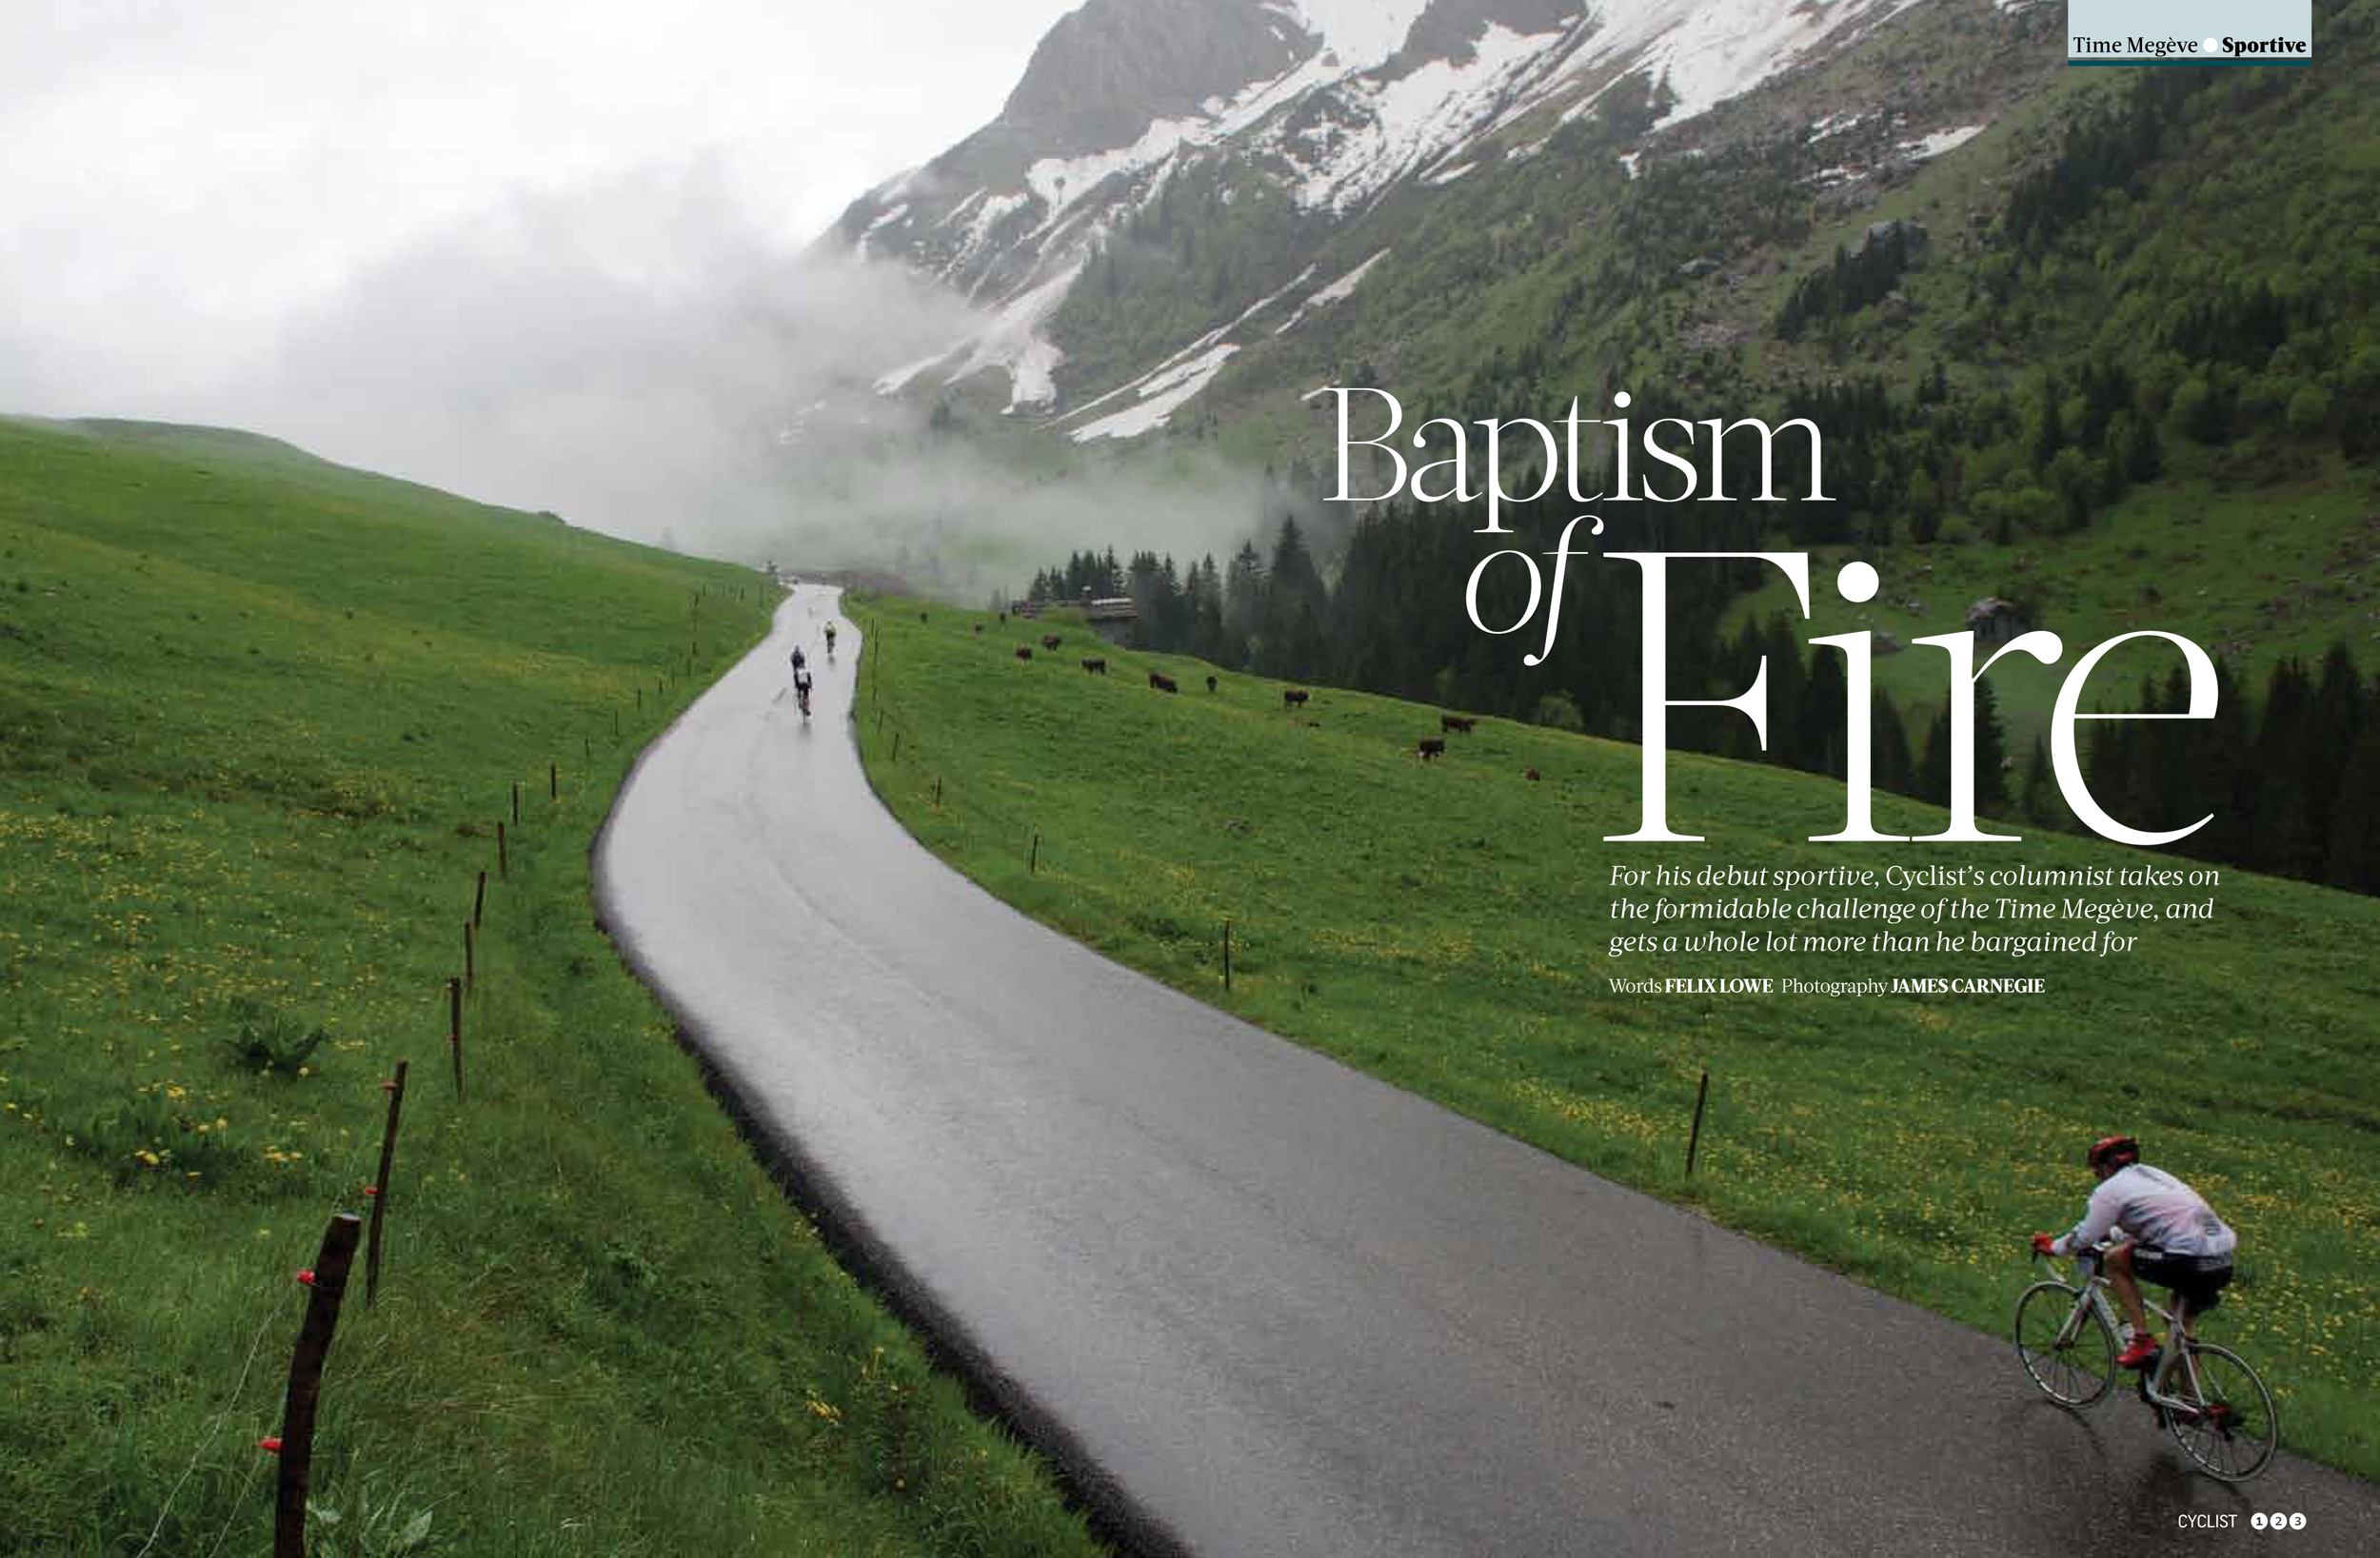 Baptism of Fire article, cyclist magazine